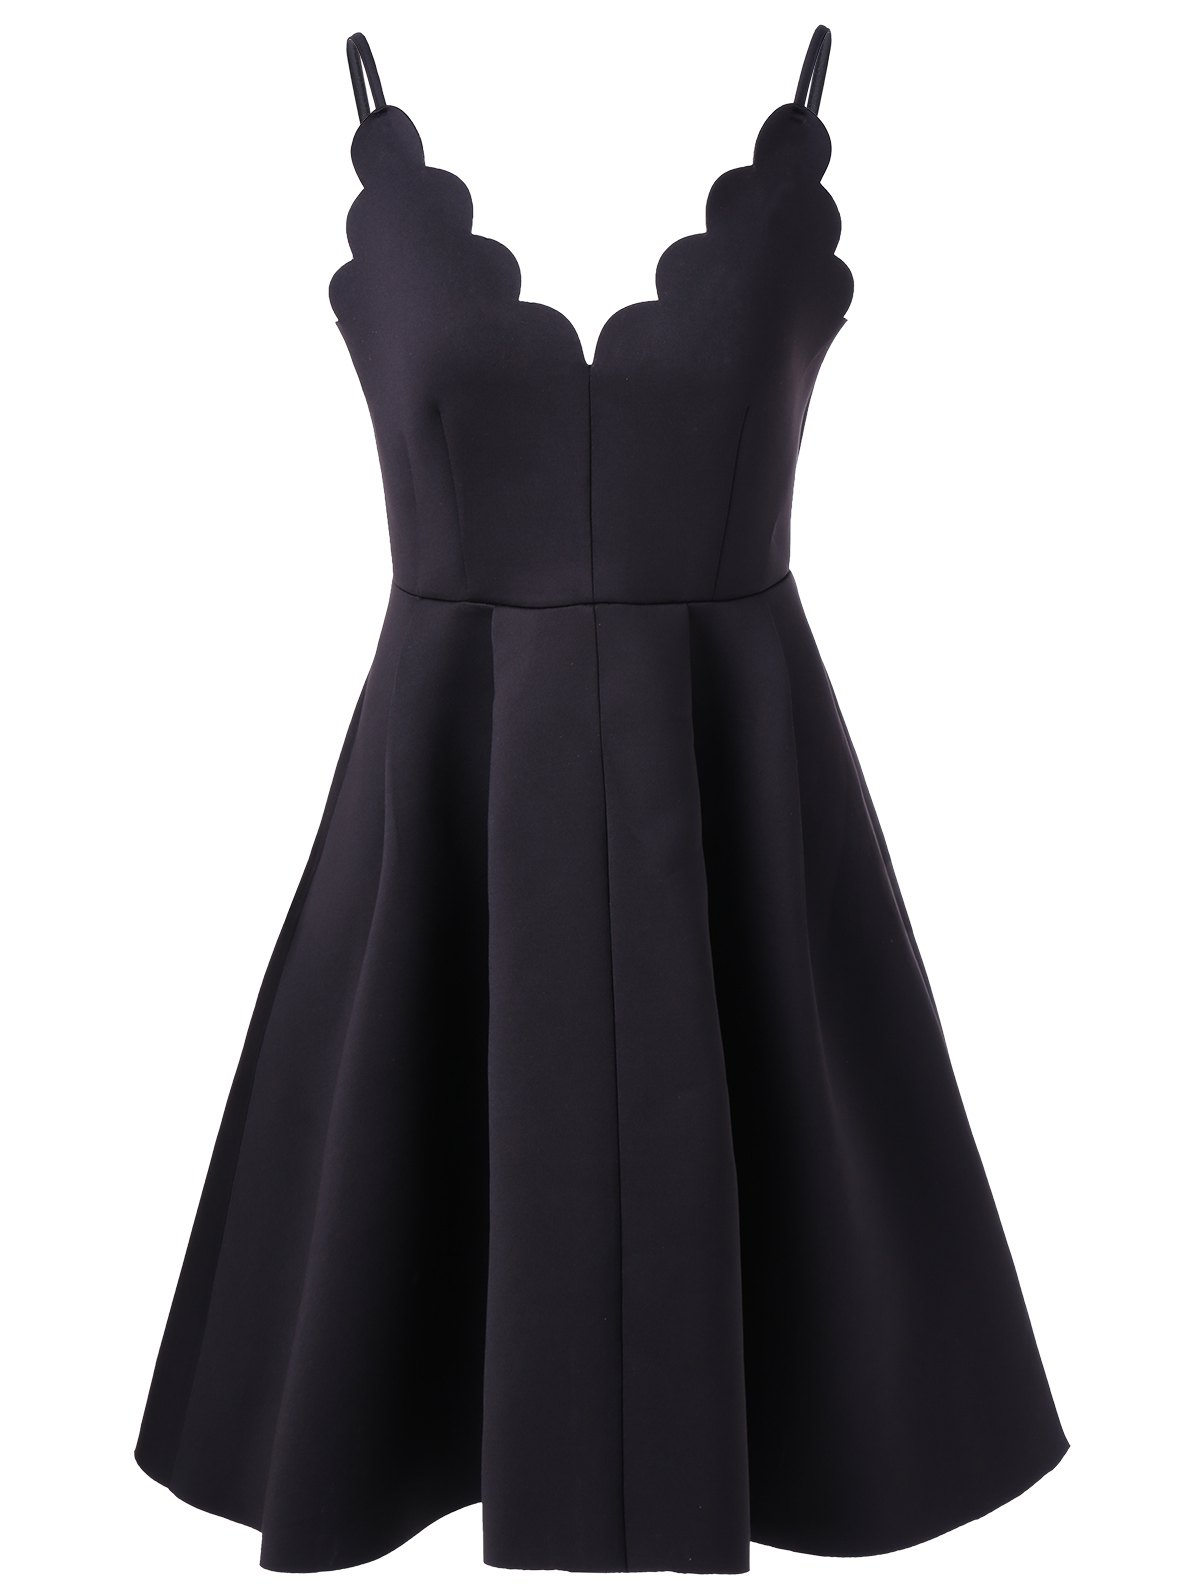 Scalloped A Line Flare Cocktail Slip Dress - BLACK XL